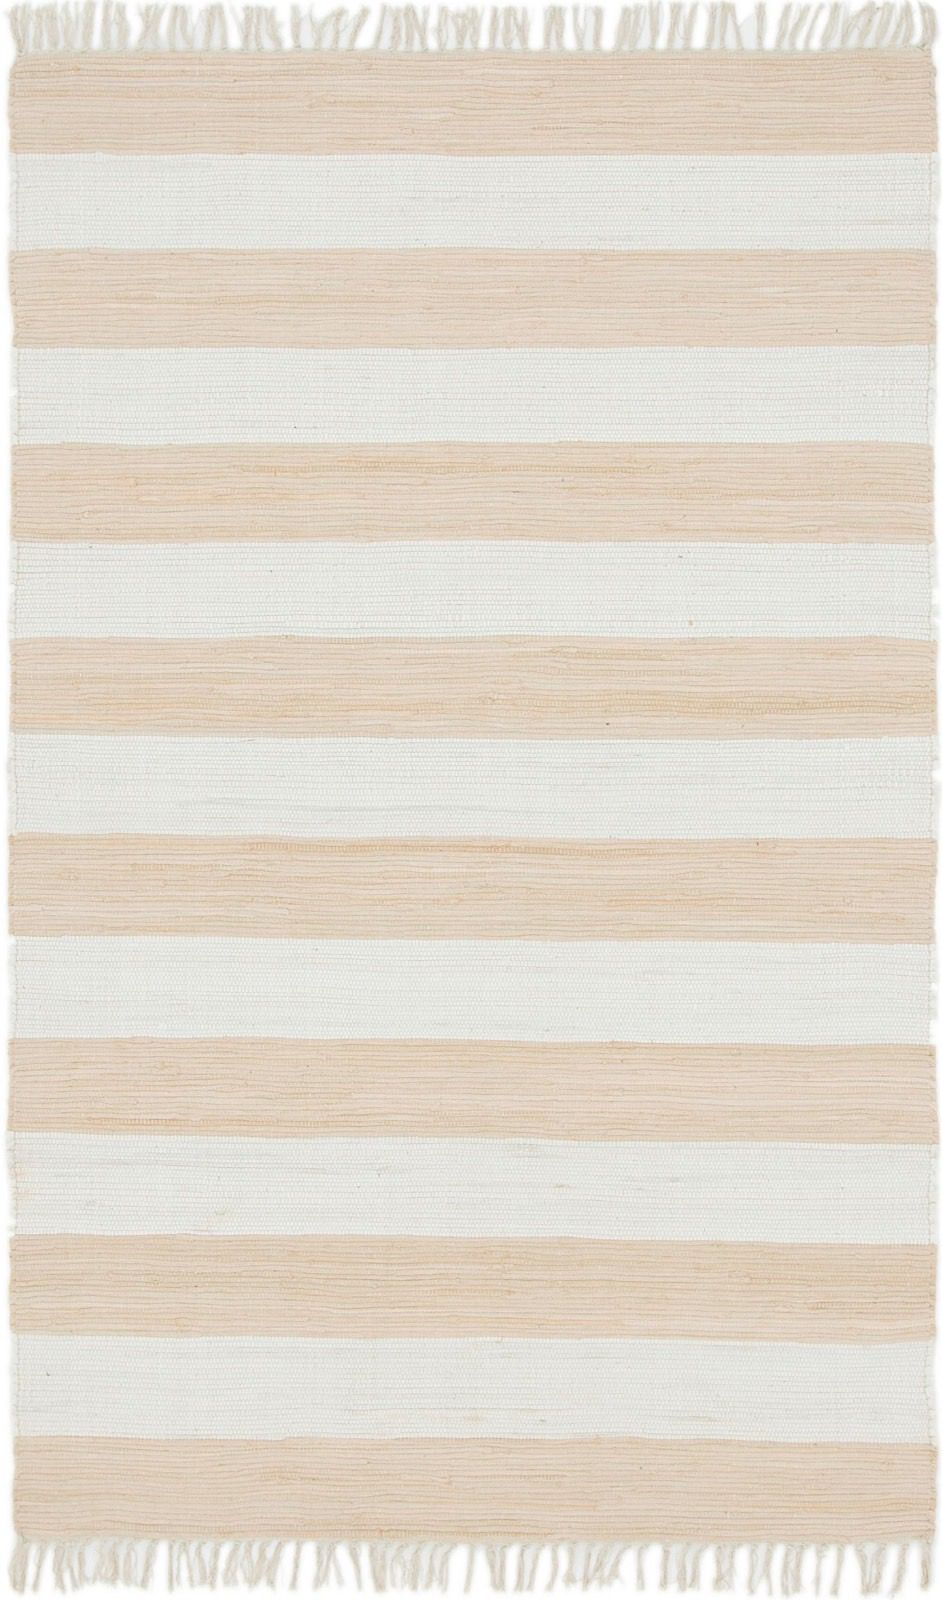 rugpal carlotta solid/striped area rug collection